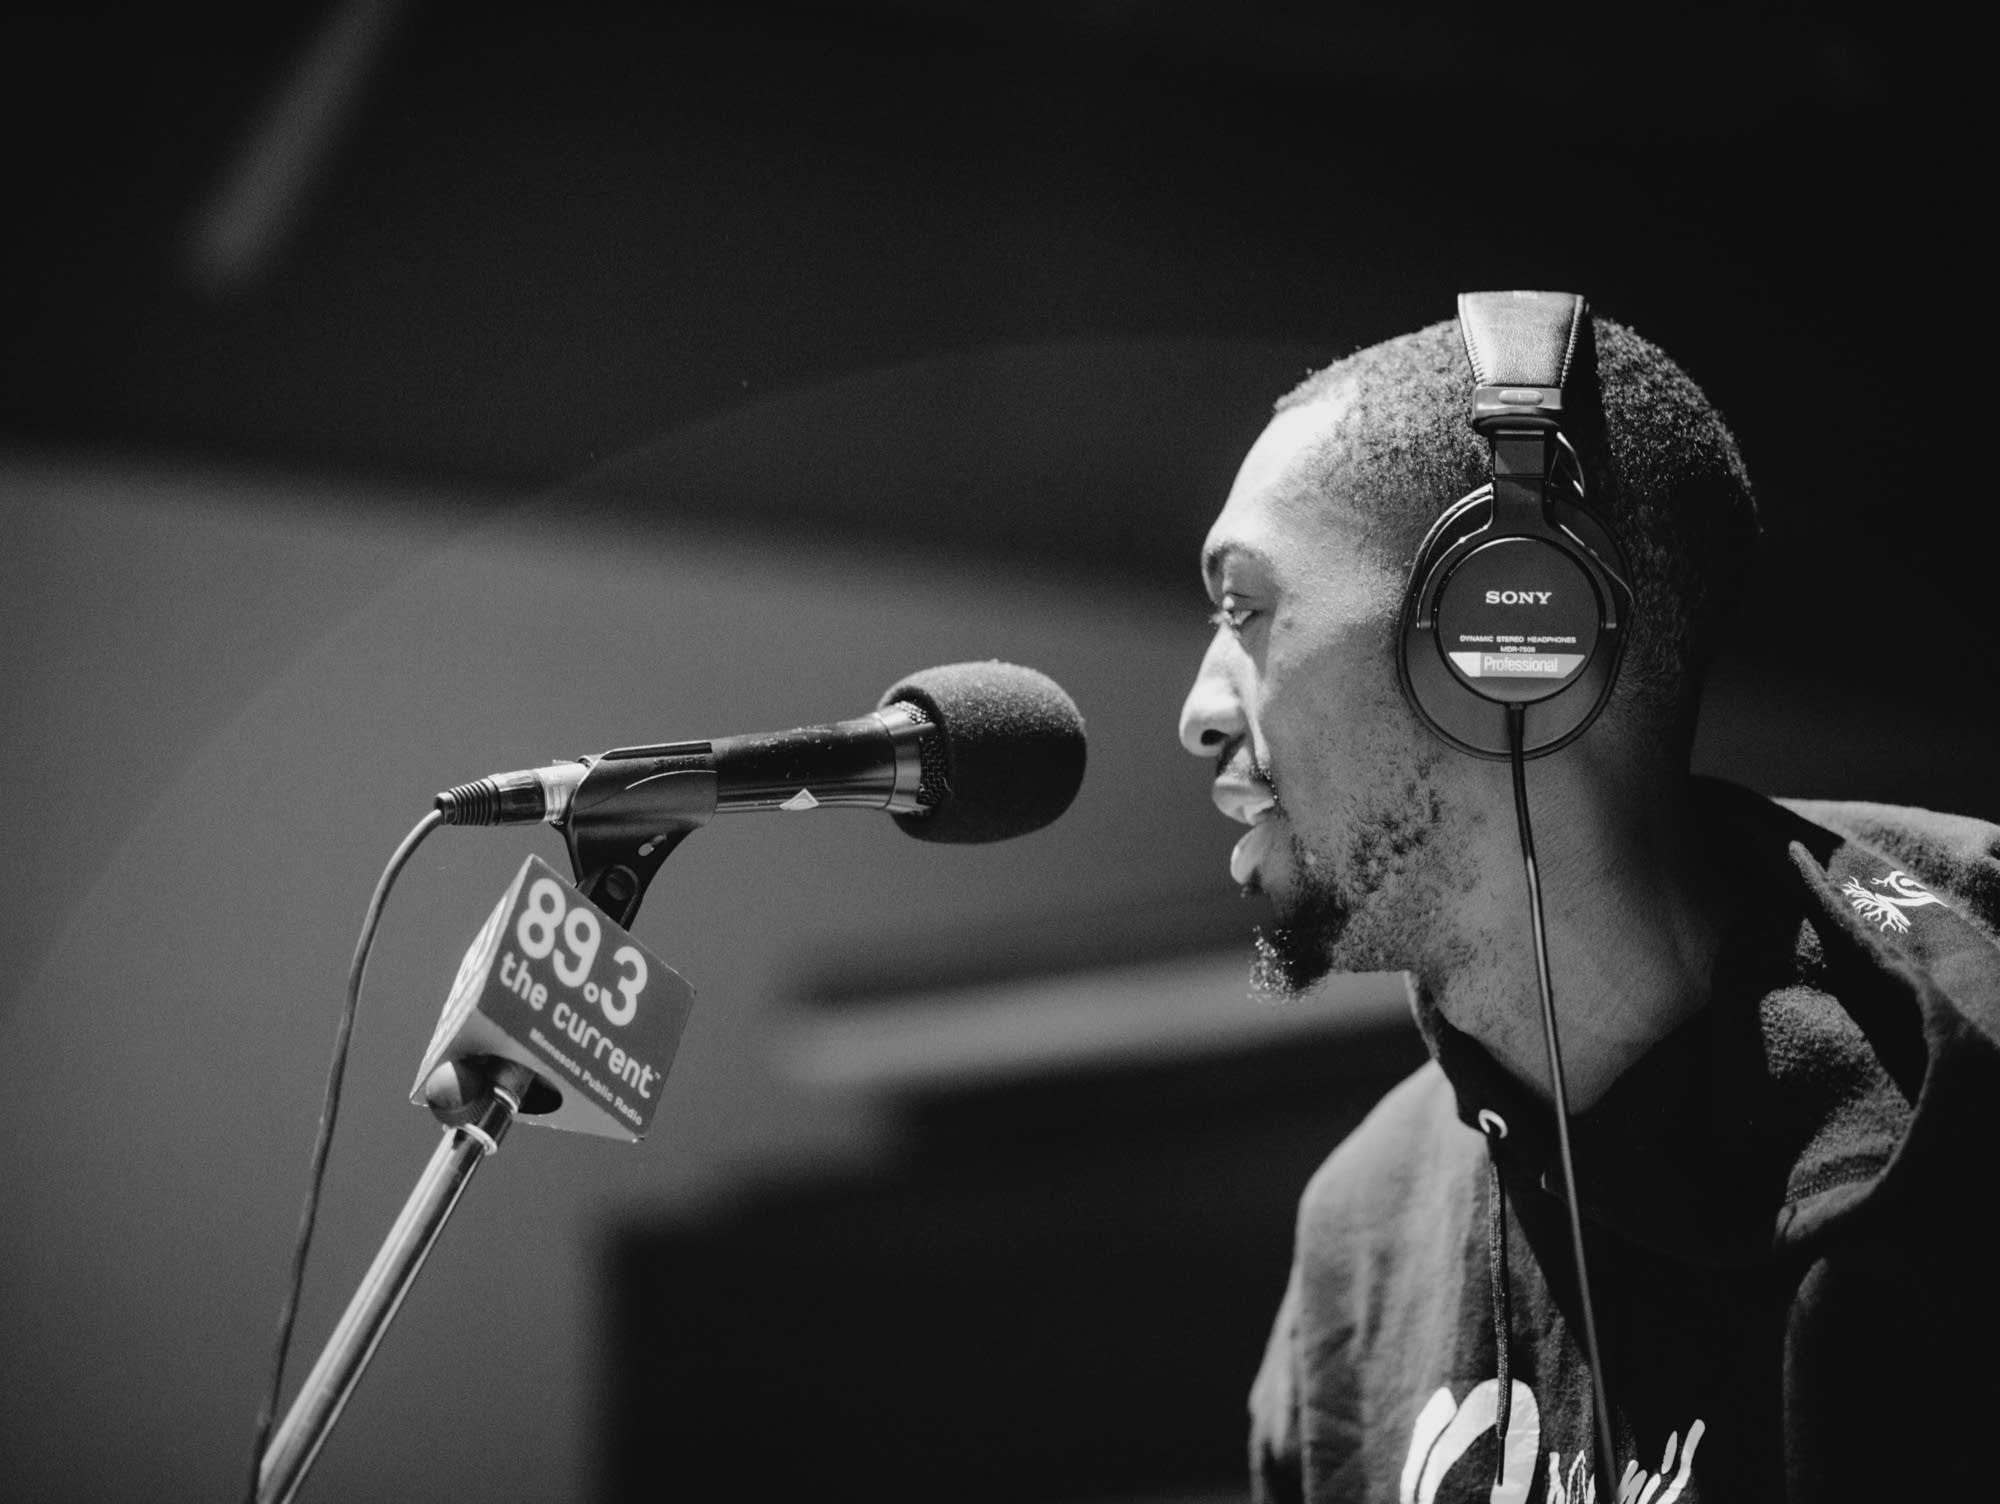 Dwynell Roland performs in The Current's studios